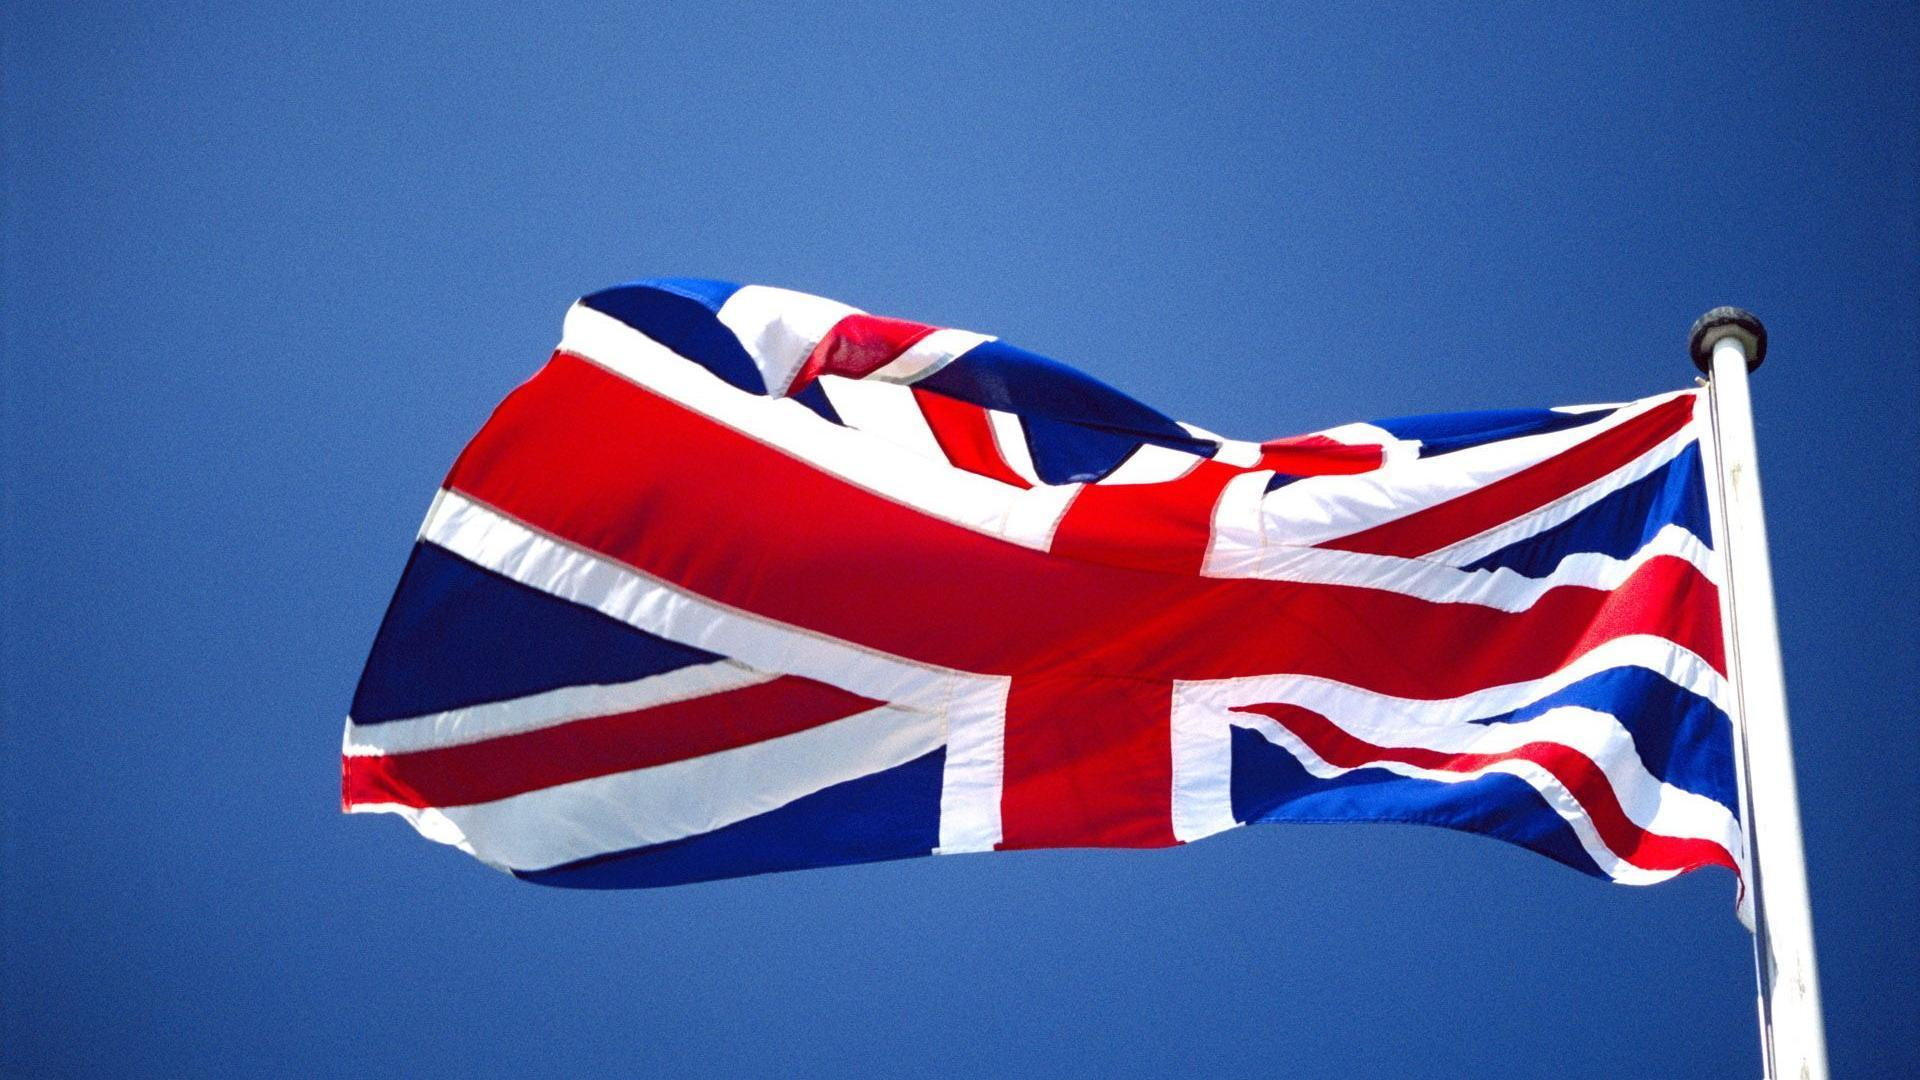 wallpapers backgrounds british - photo #21